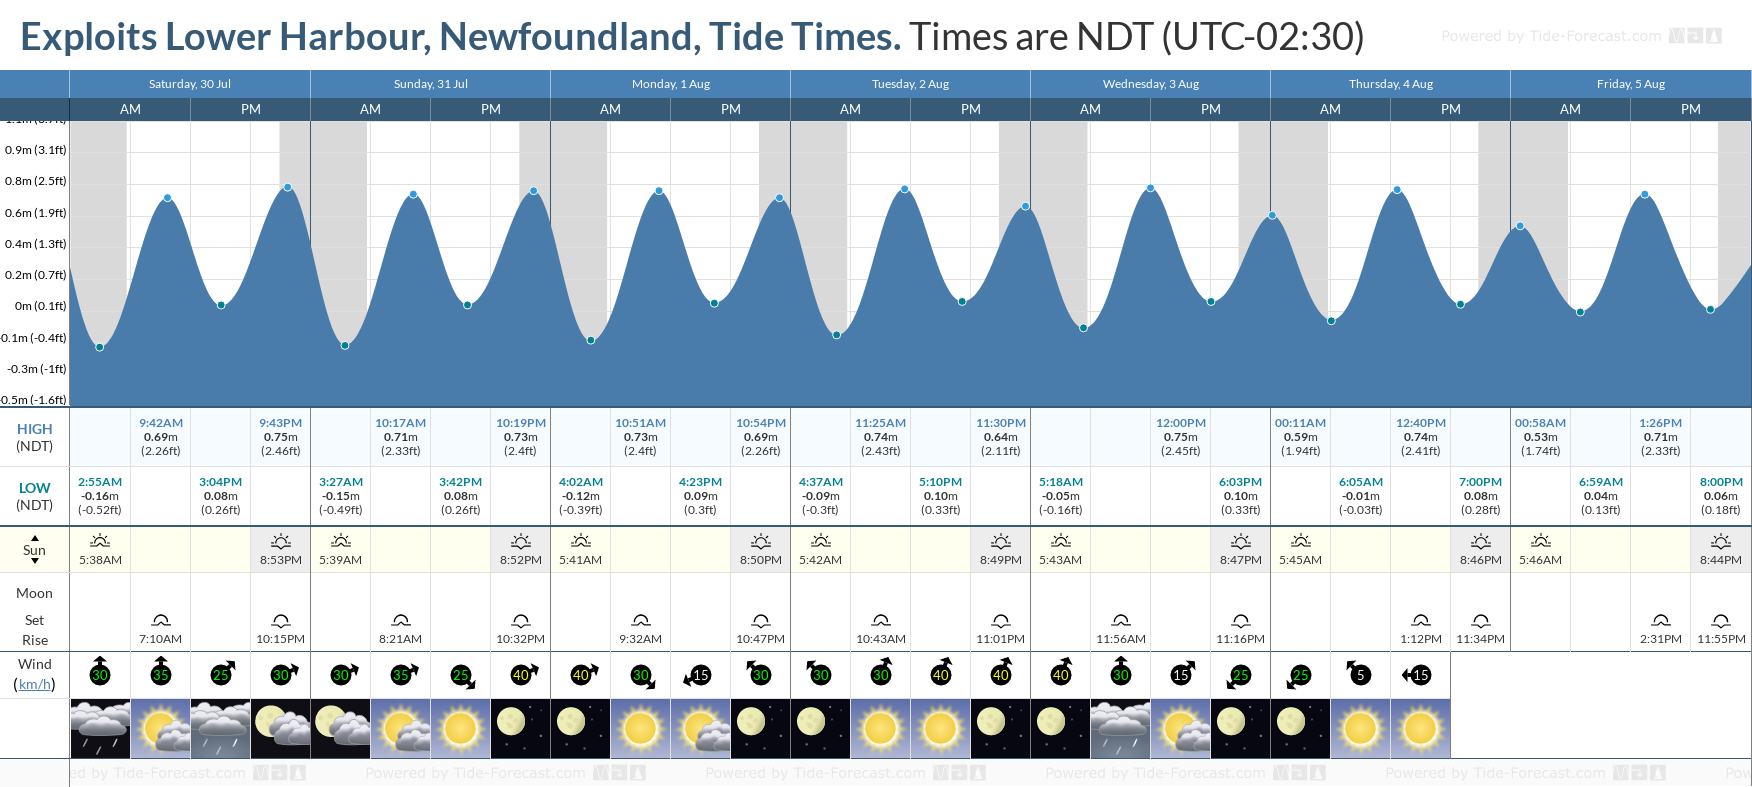 Exploits Lower Harbour, Newfoundland Tide Chart including high and low tide tide times for the next 7 days